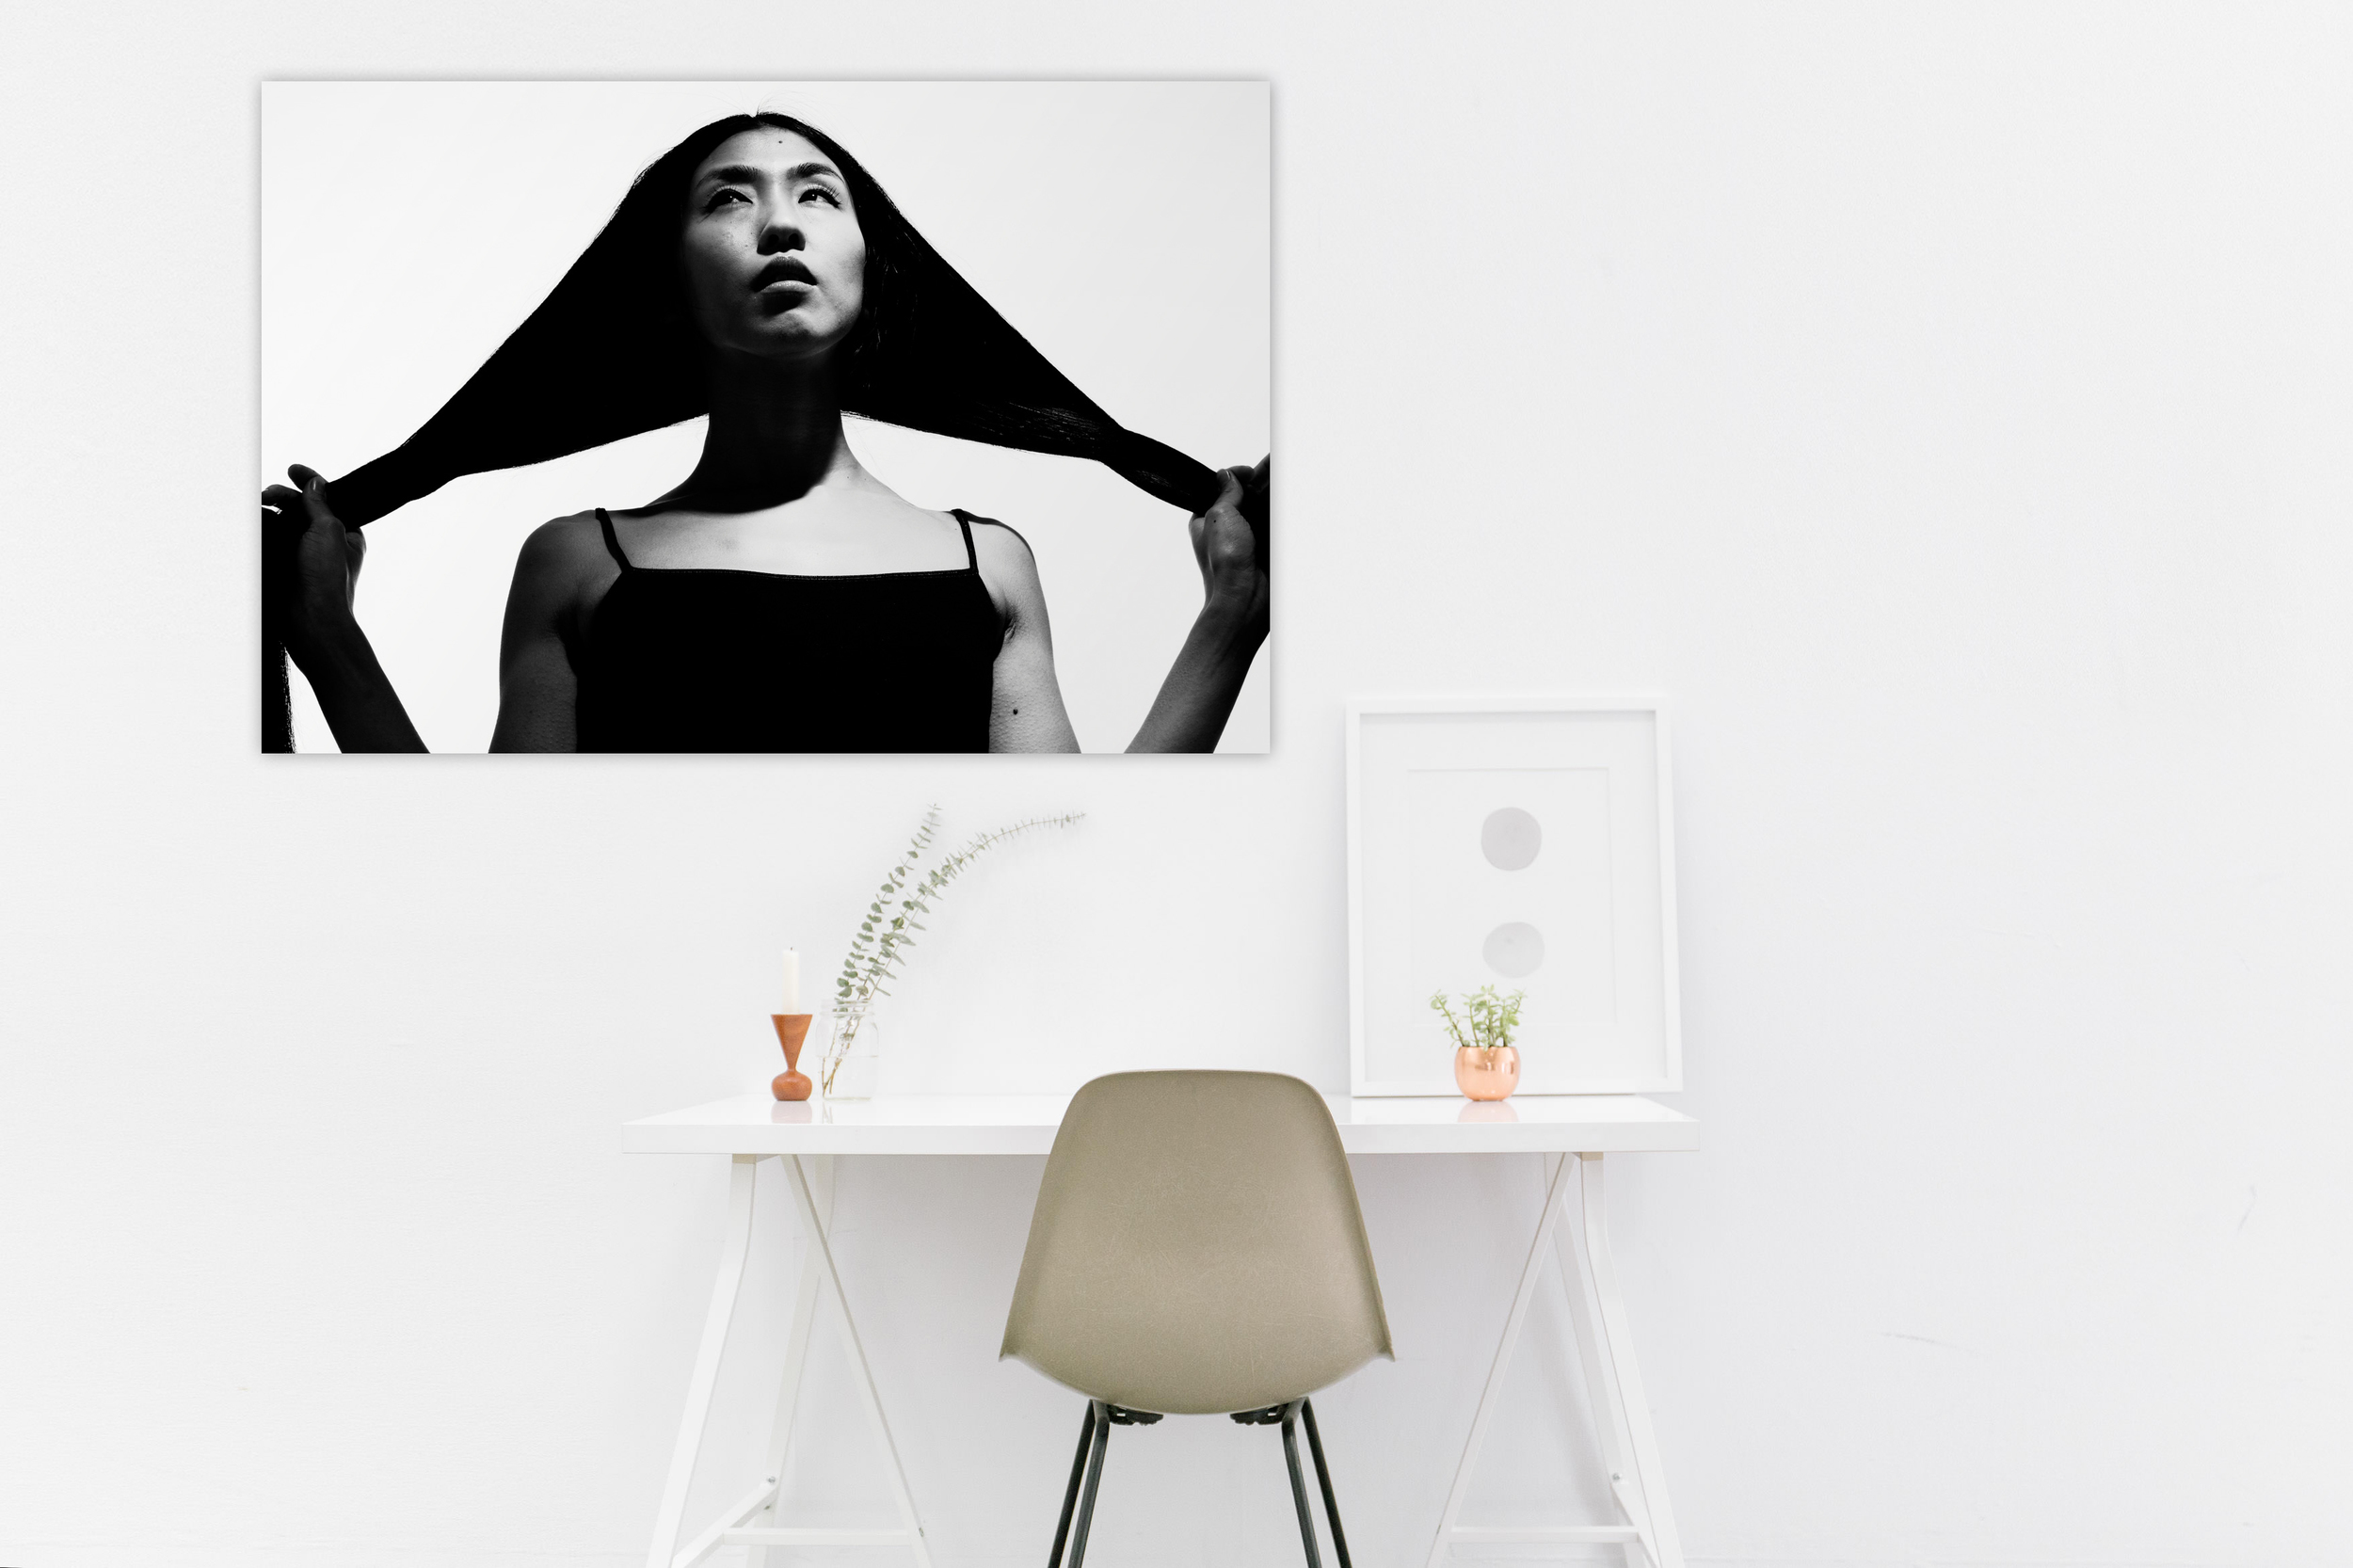 Hair Model in Black and White / 24x36 inches / open edition